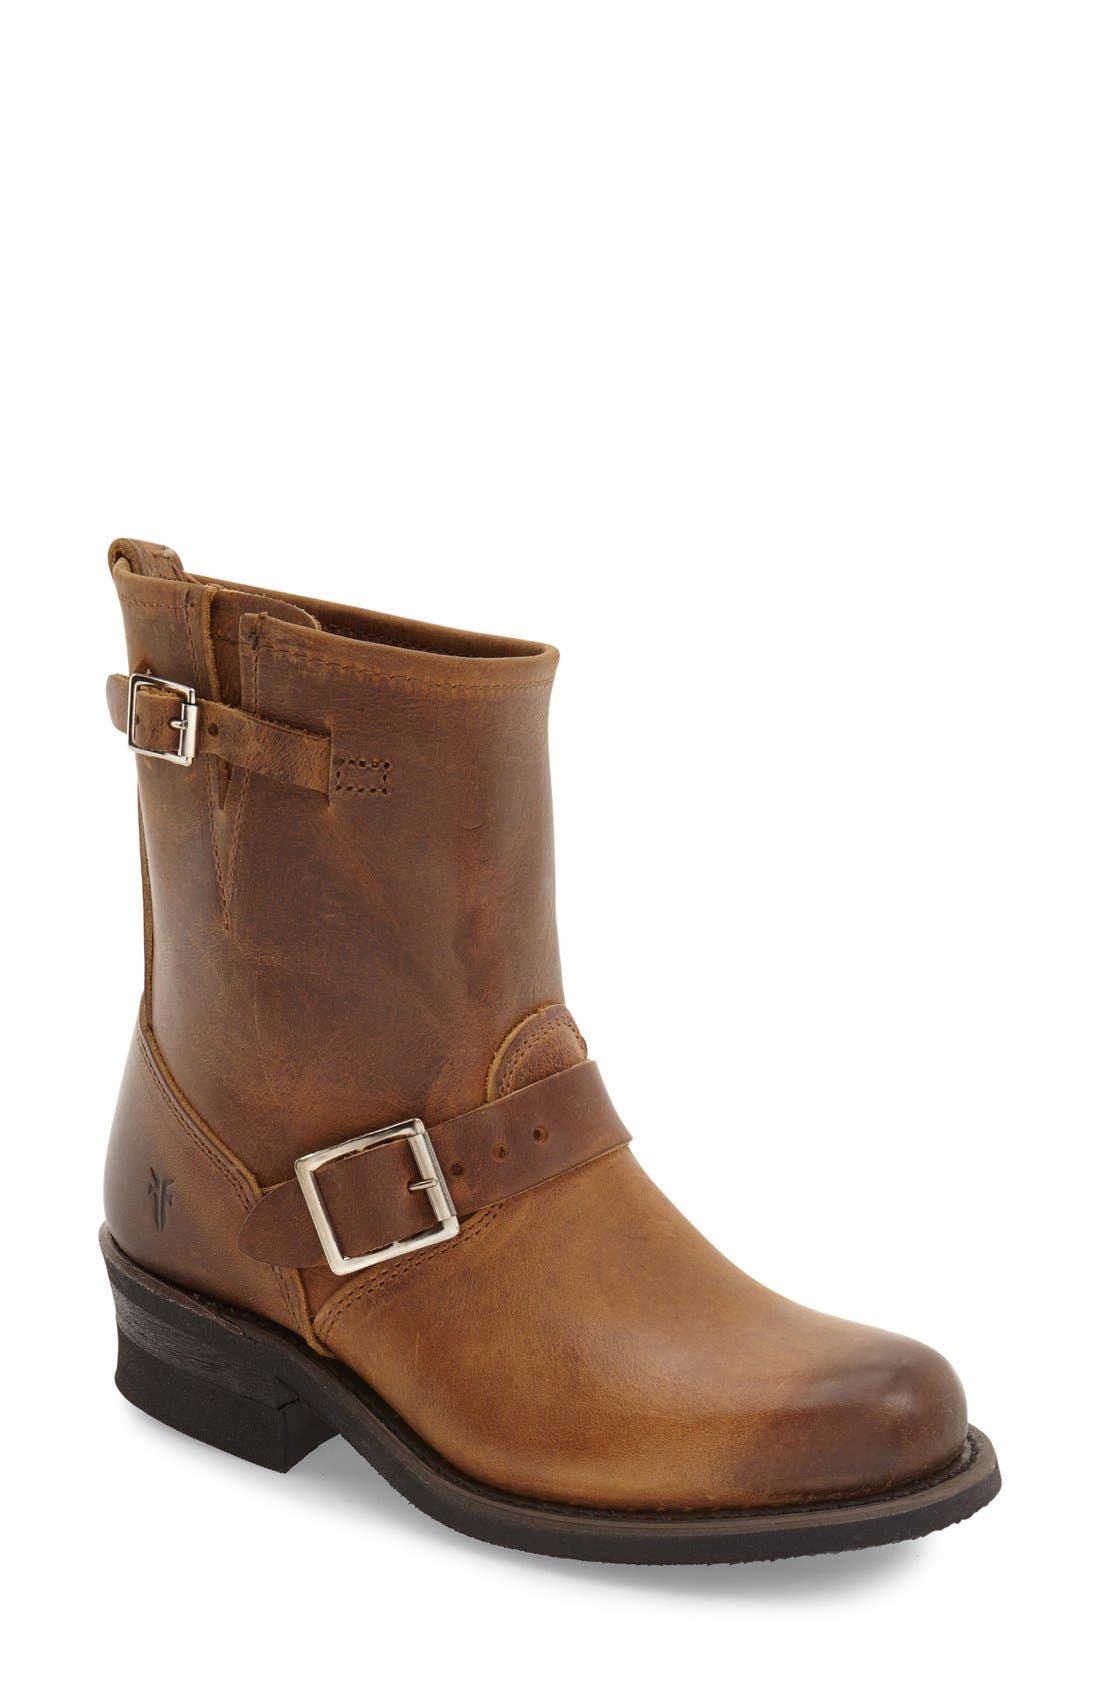 'Engineer 8R' Leather Boot,                             Main thumbnail 1, color,